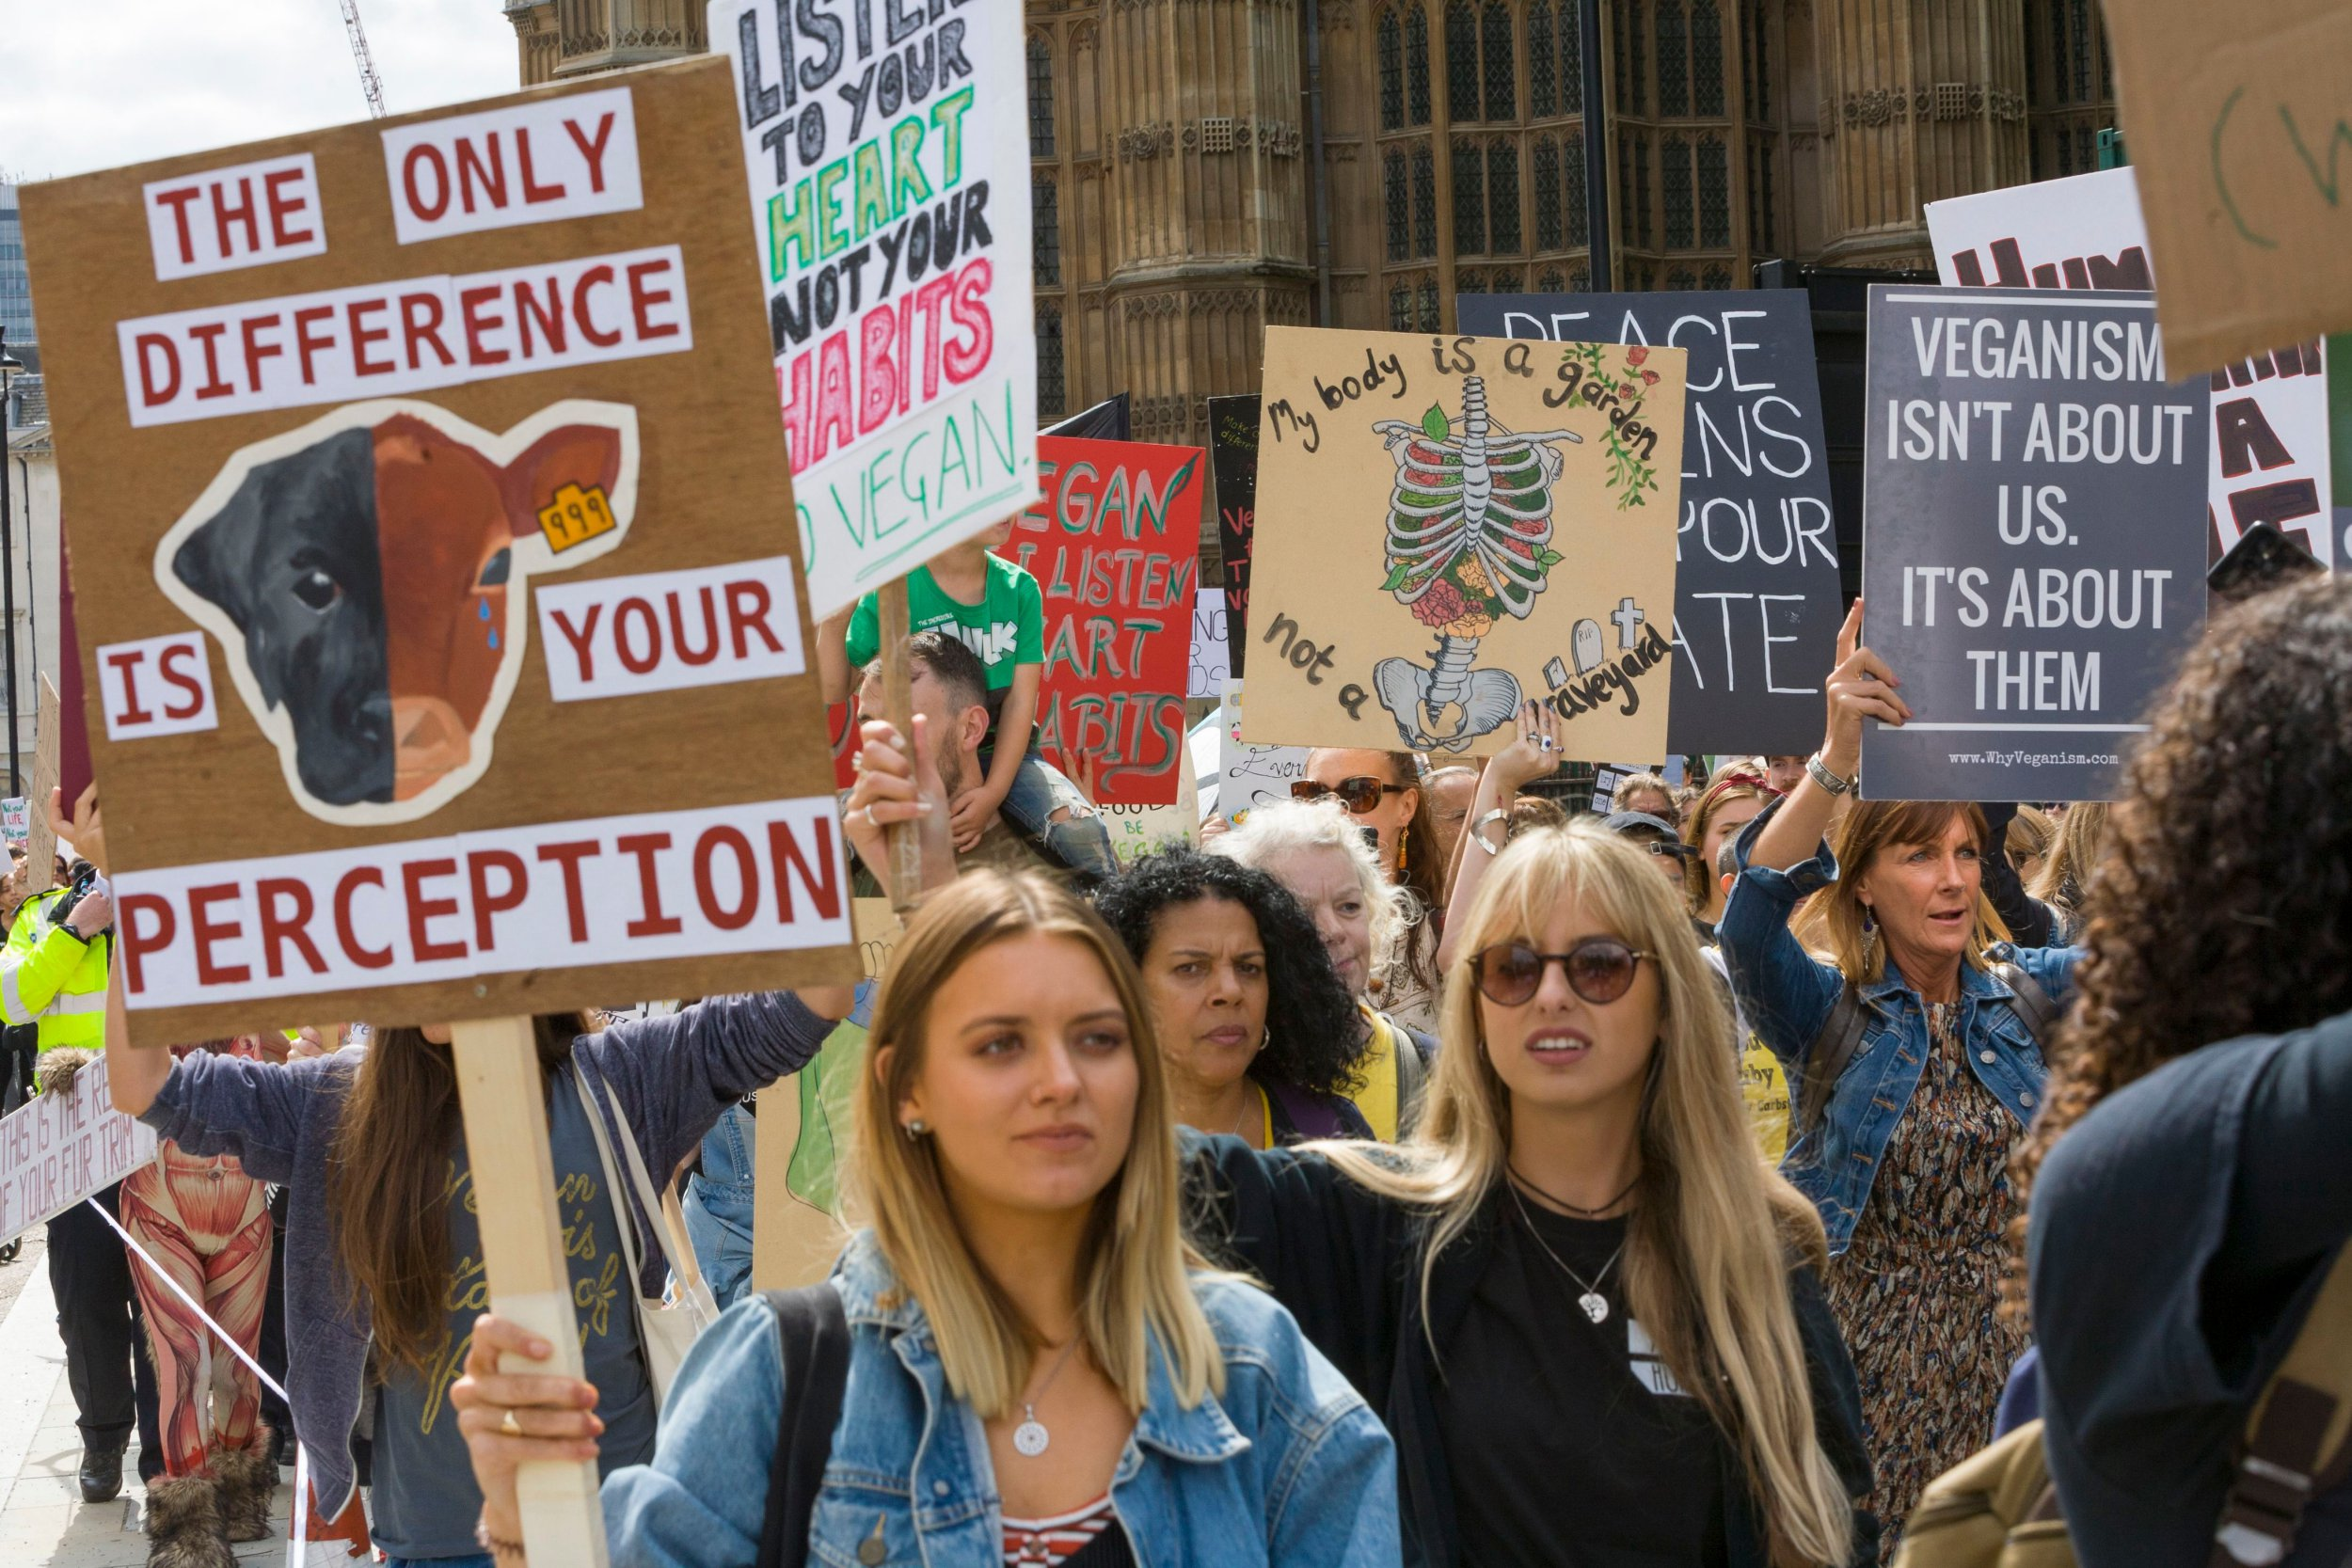 Mandatory Credit: Photo by Steve Parkins/REX/Shutterstock (9807858p) The Official Animal Rights March London 2018, sees thousands of vegans take over the streets of London, demanding an end to all animal oppression. Animal rights demonstration, London, UK - 25 Aug 2018